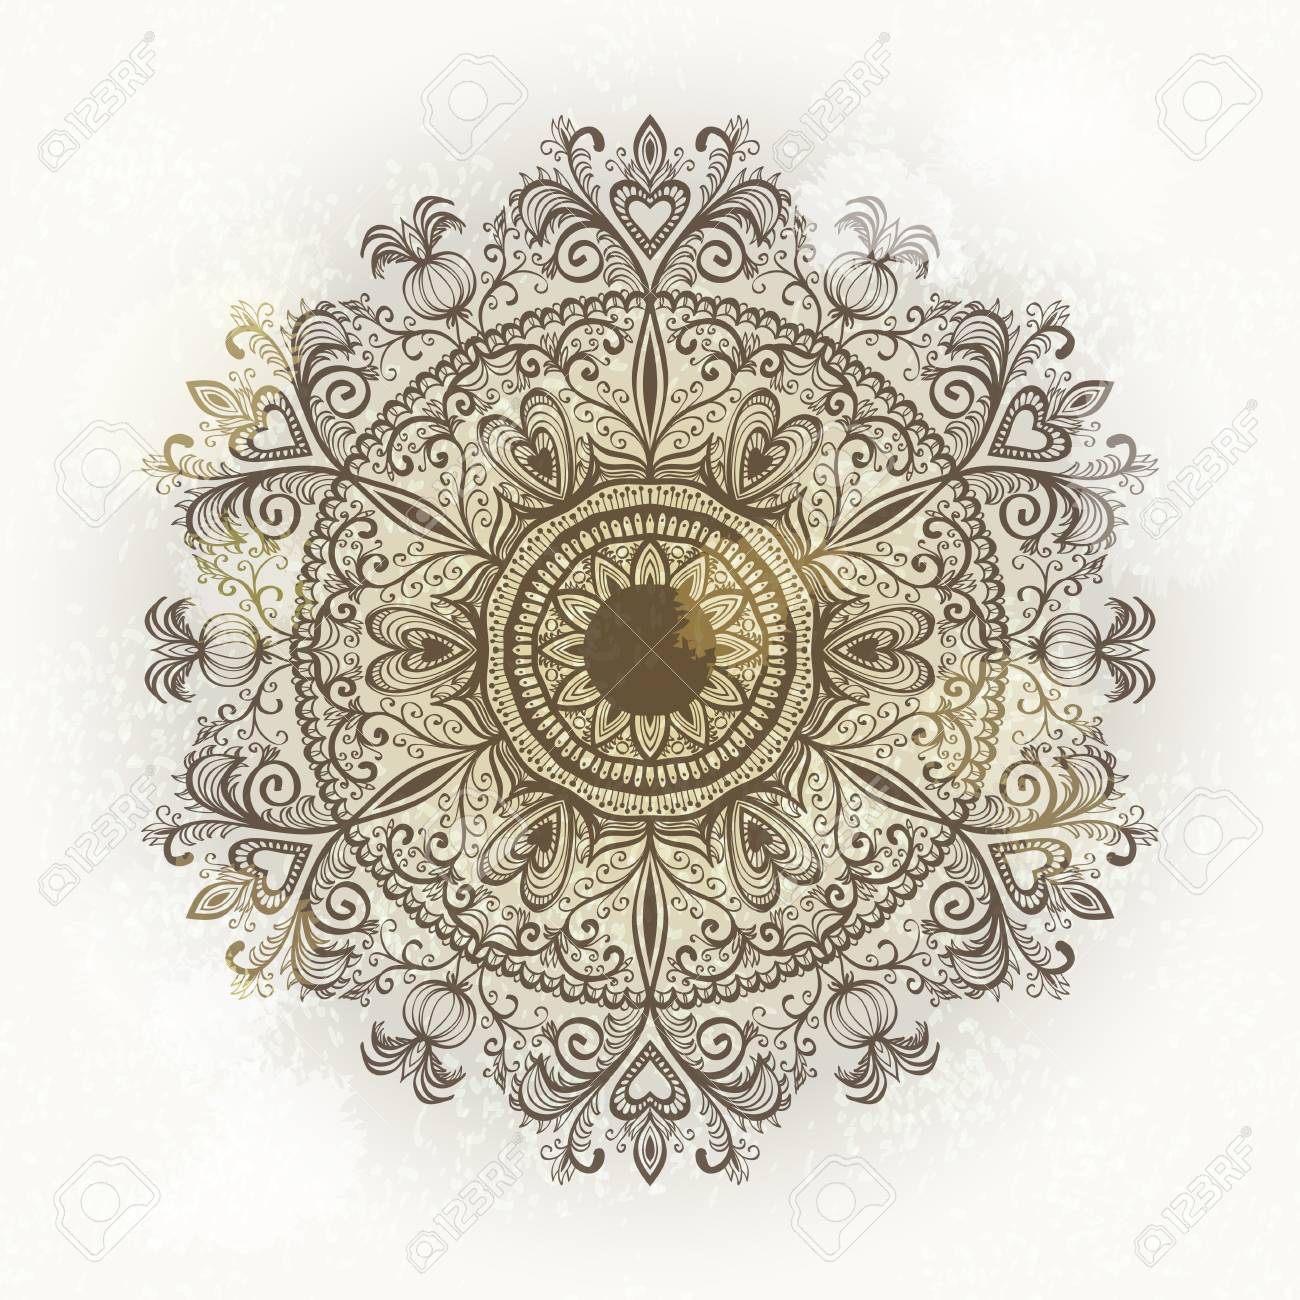 Grunge hand drawn circular floral ornament. Eps10 Stock Vector - 17707620